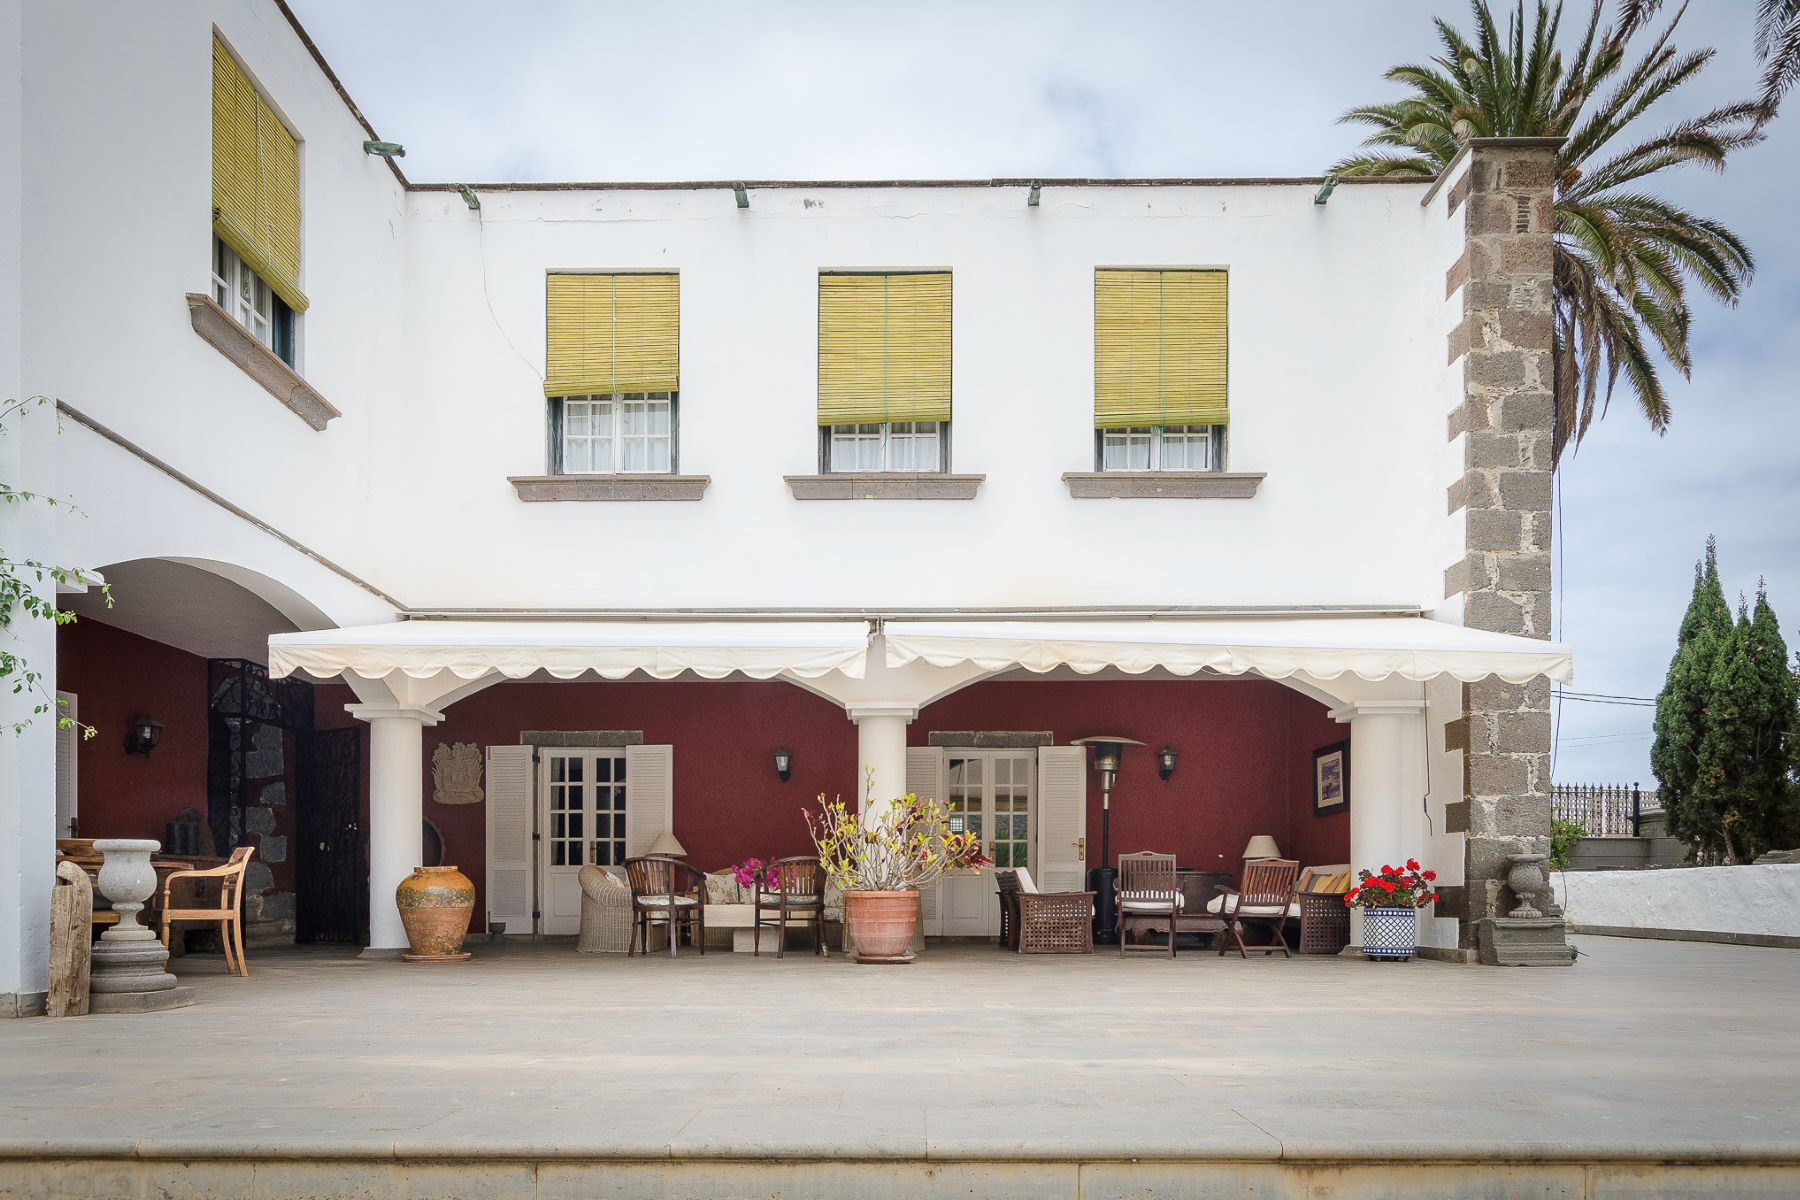 Single Family Homes for Sale at 18th Century villa on the North of Grand Canaria Other Spain, Other Areas In Spain Spain